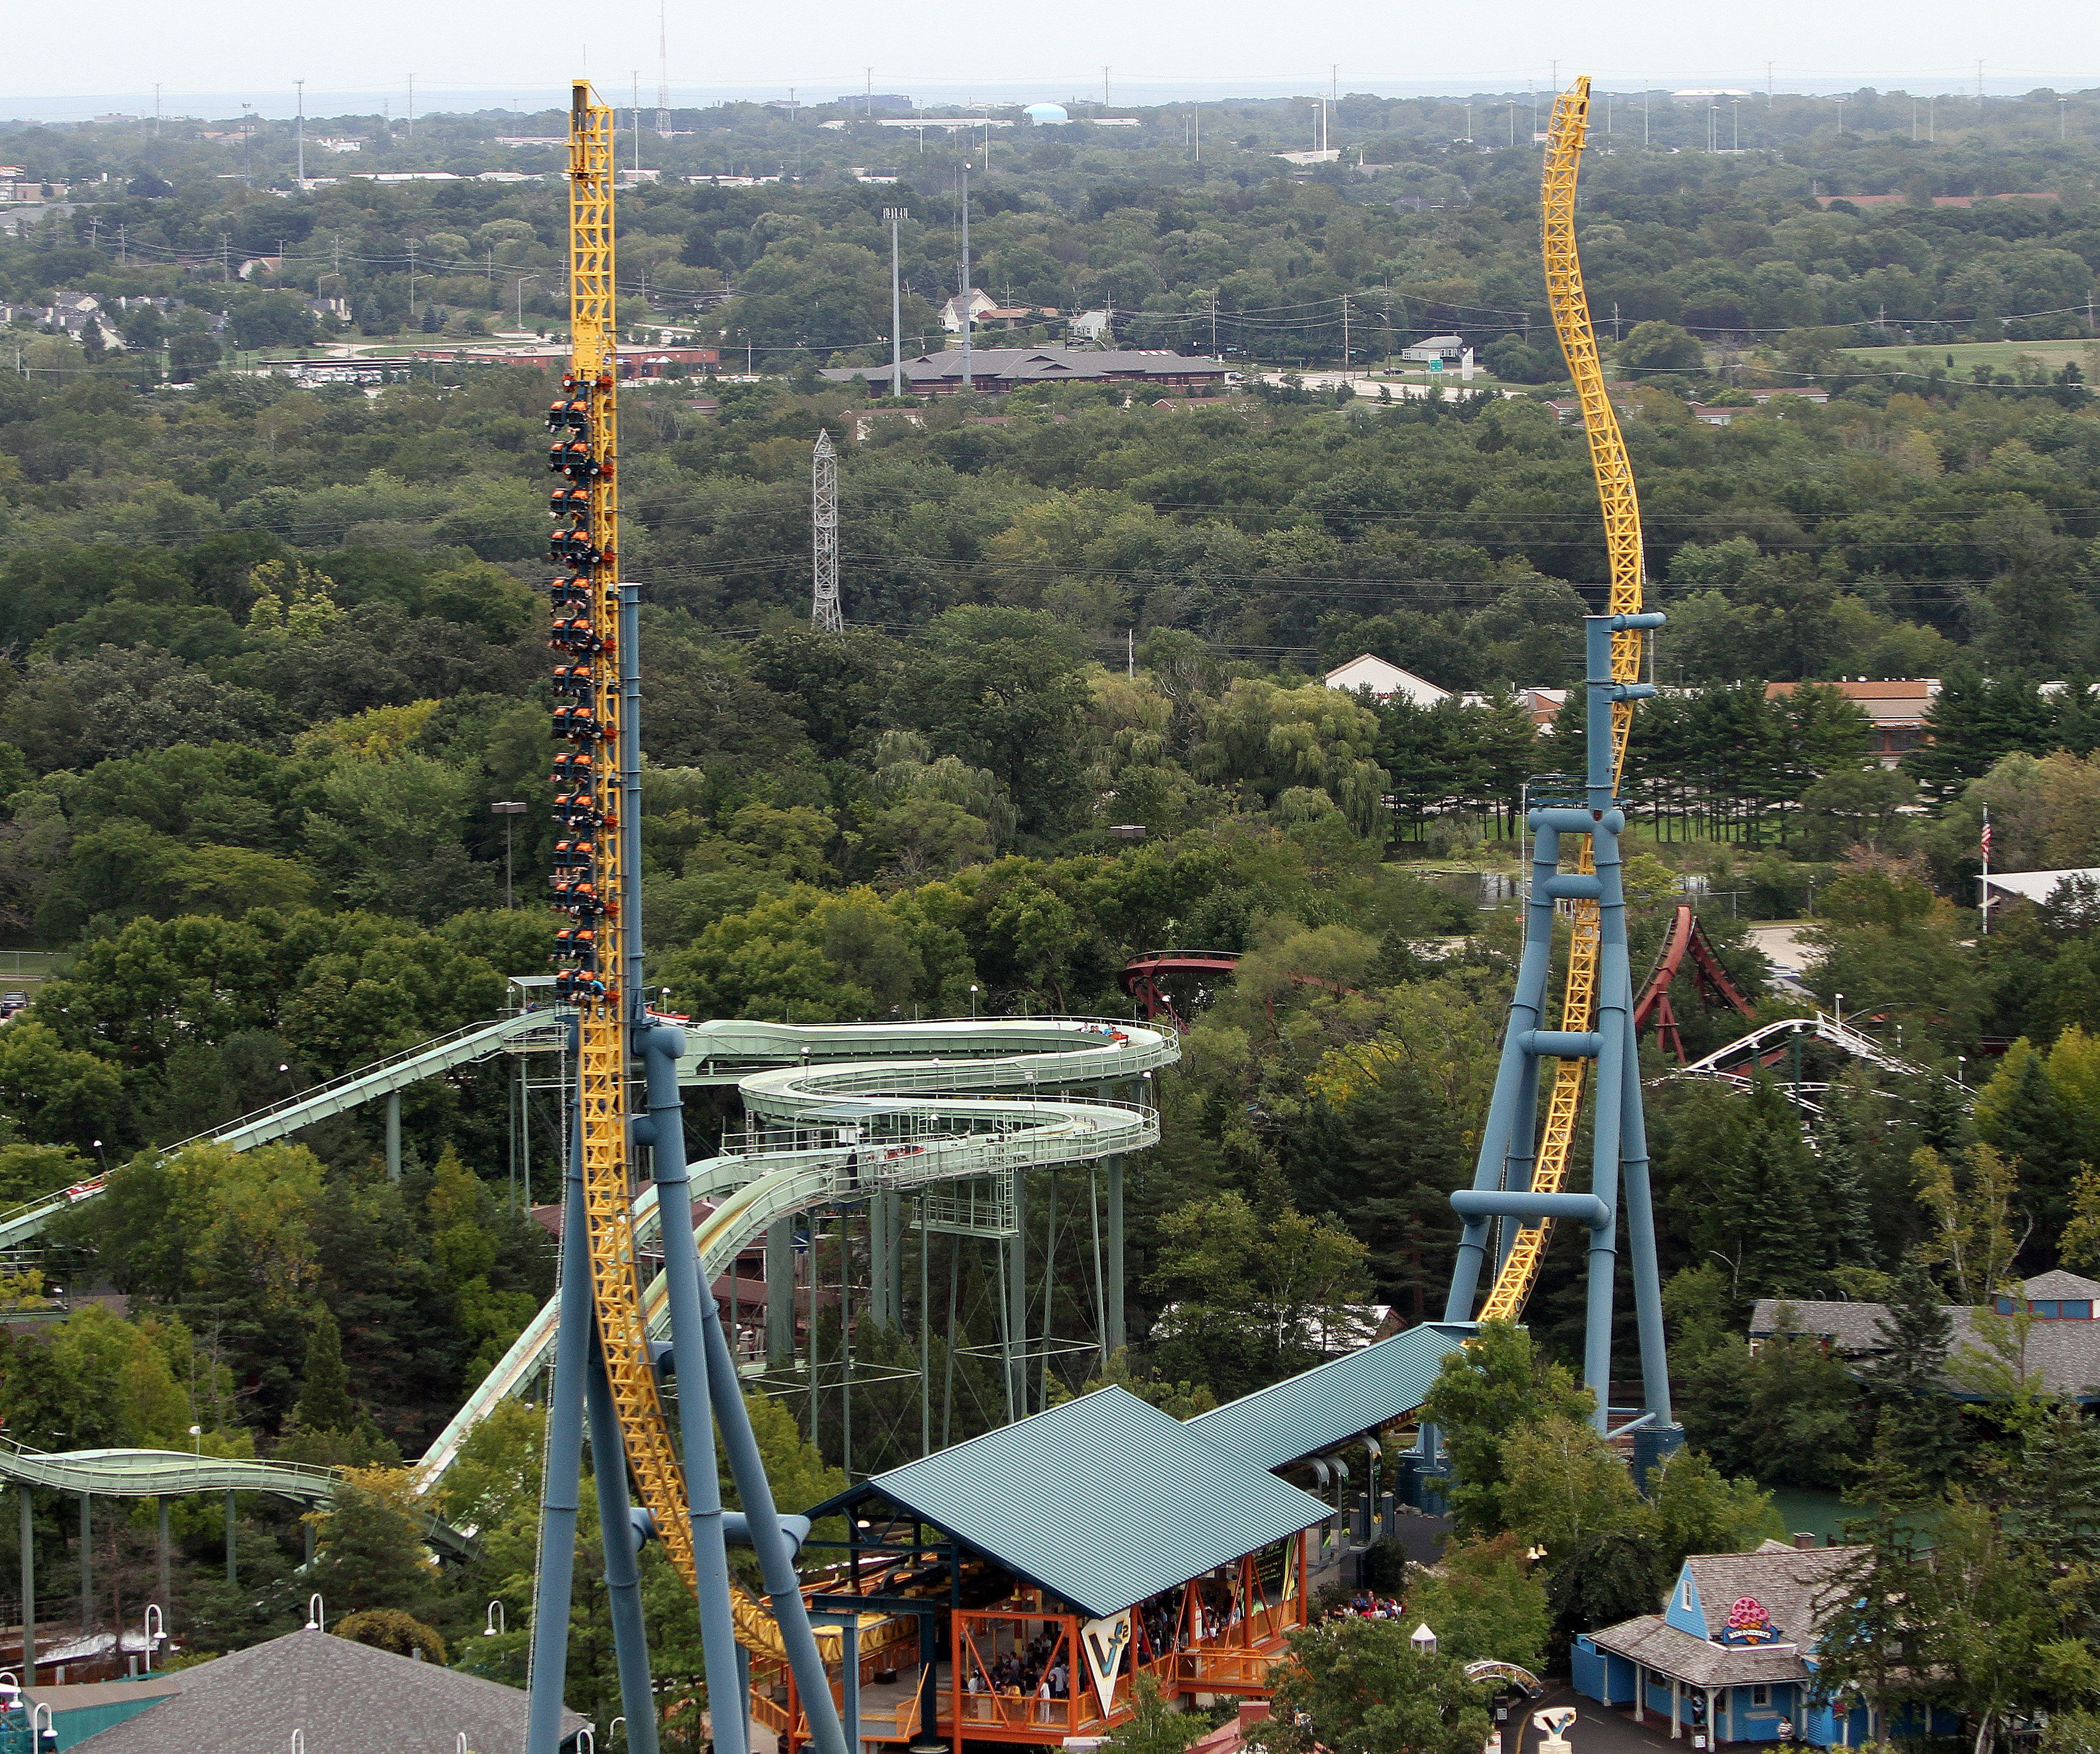 Vertical Velocity at Six Flags